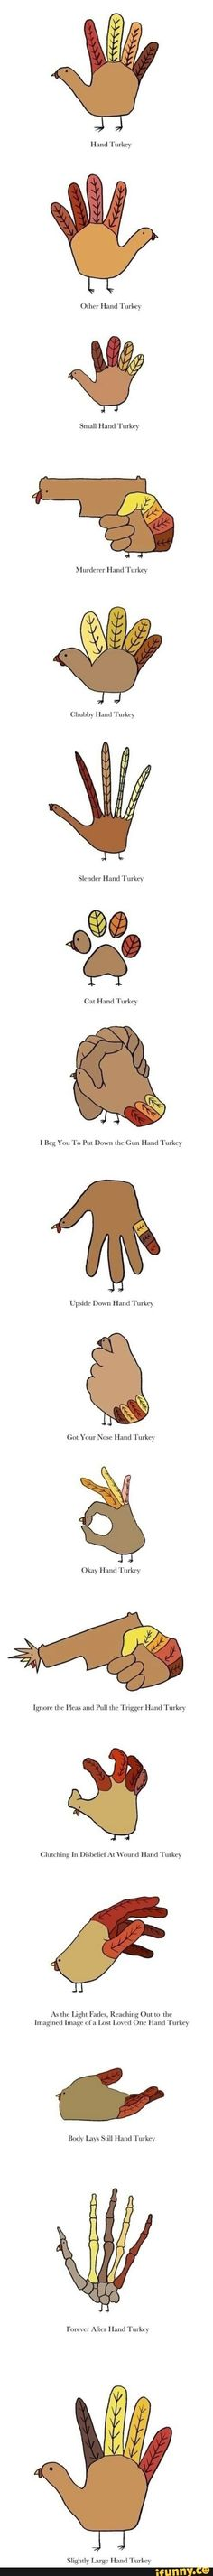 Different hand turkeys to try this Thanksgiving!